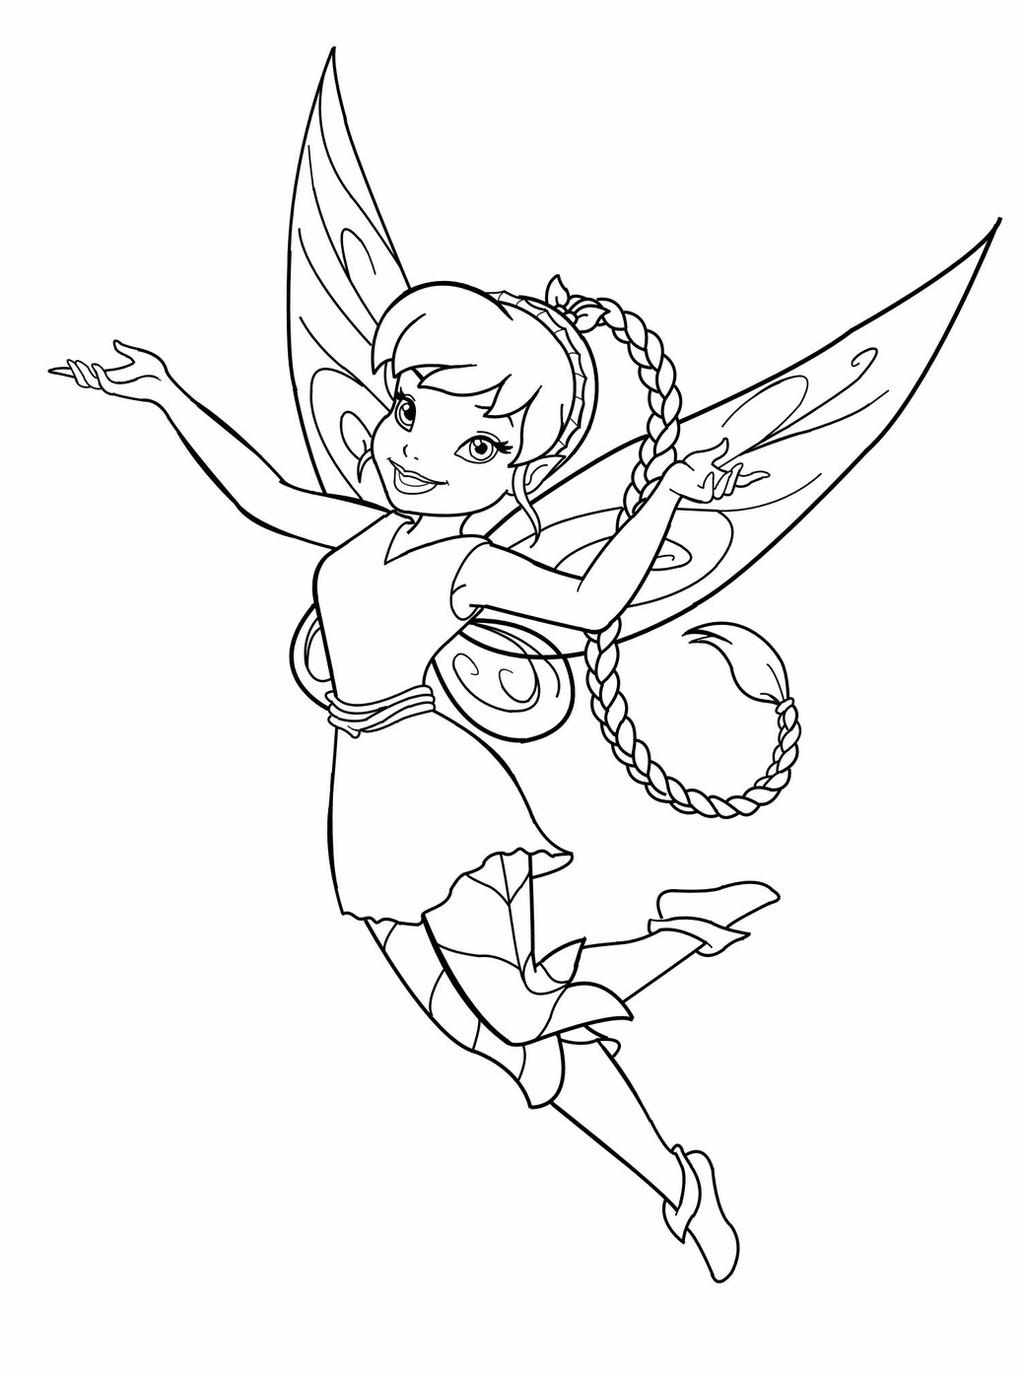 creepy fairy coloring pages disney fairyfawn lineart by mercuriusneko on deviantart fairy coloring creepy pages